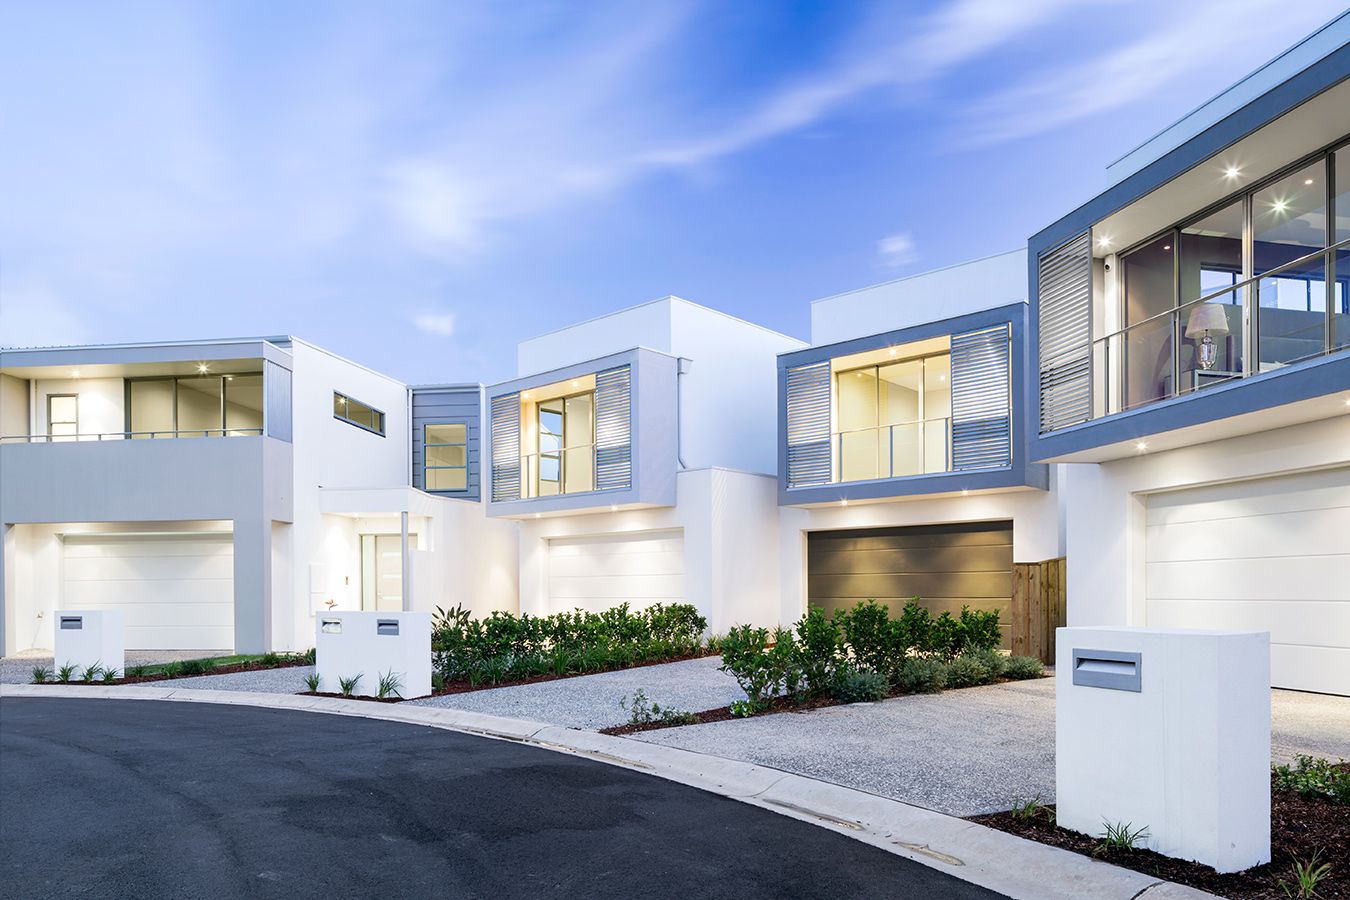 residential architectural photography the lakes fkp mulpha.jpg